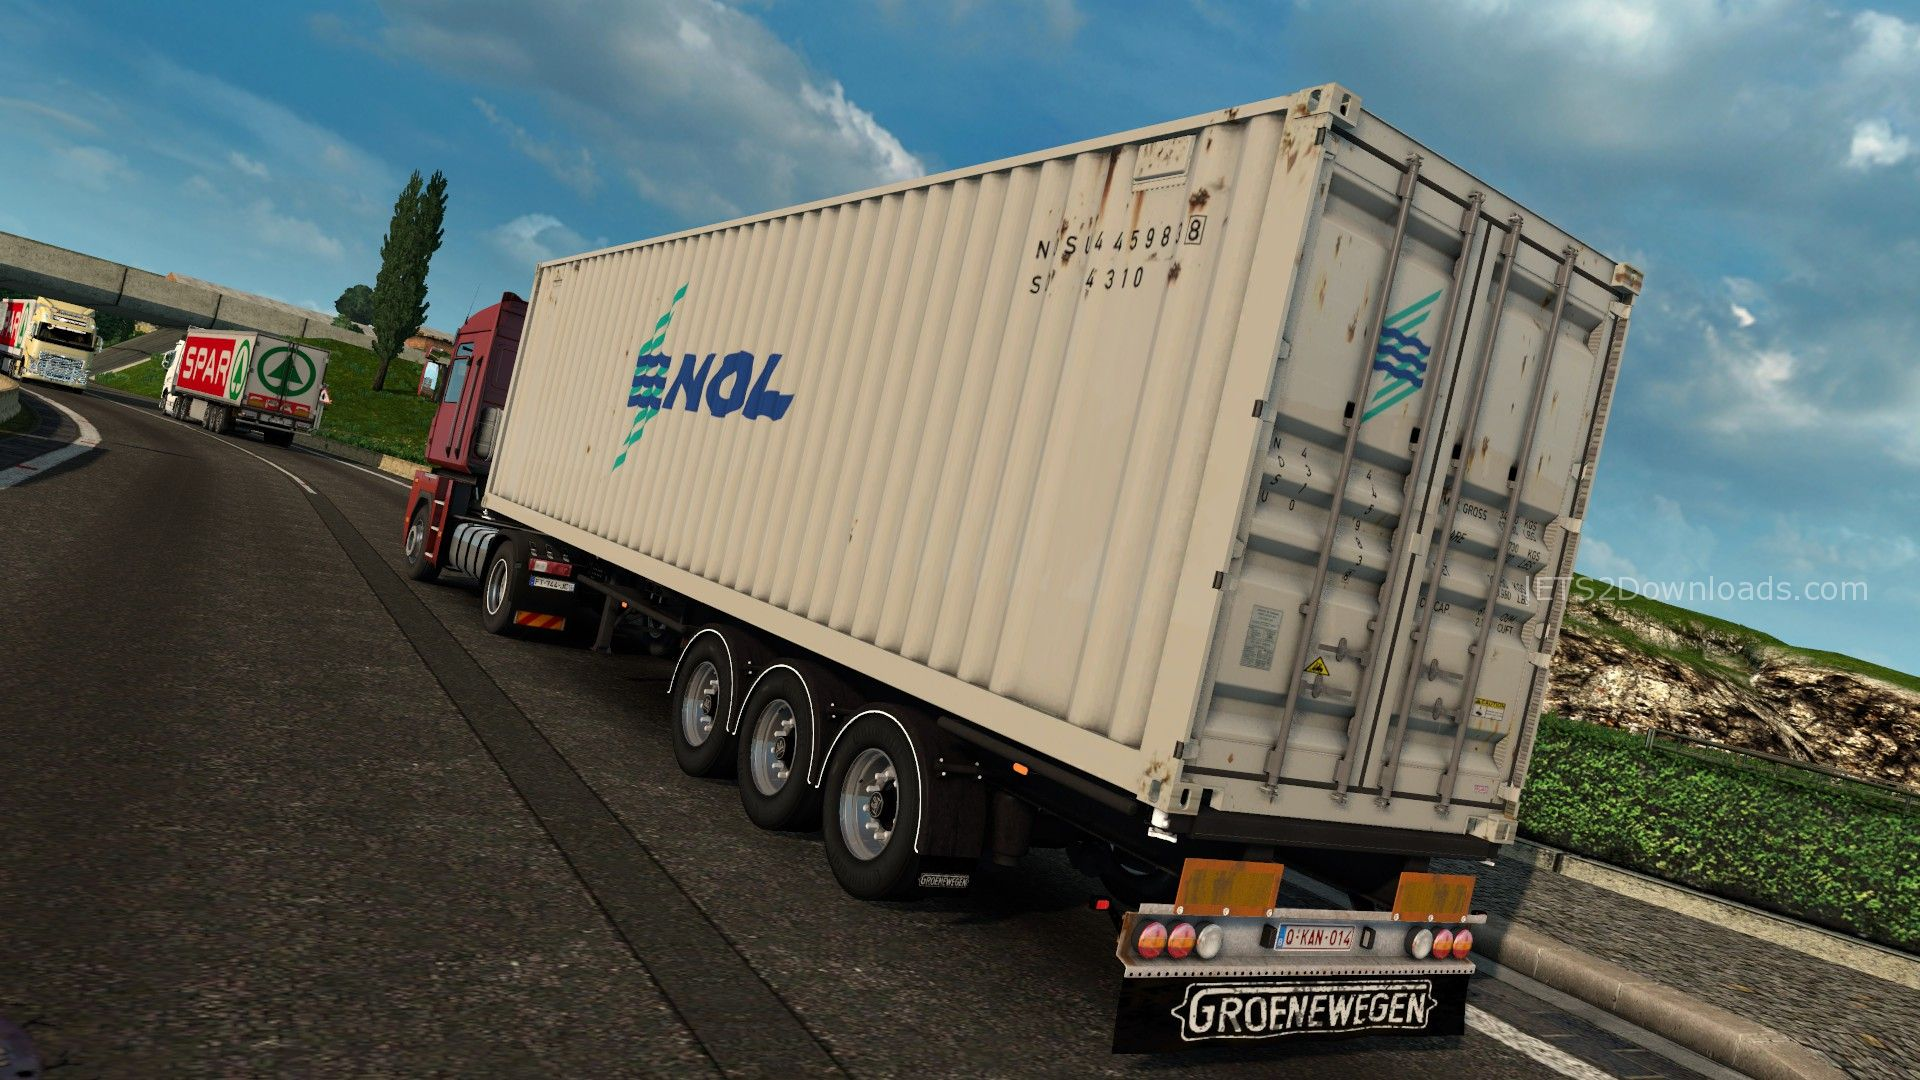 nol-shipping-container